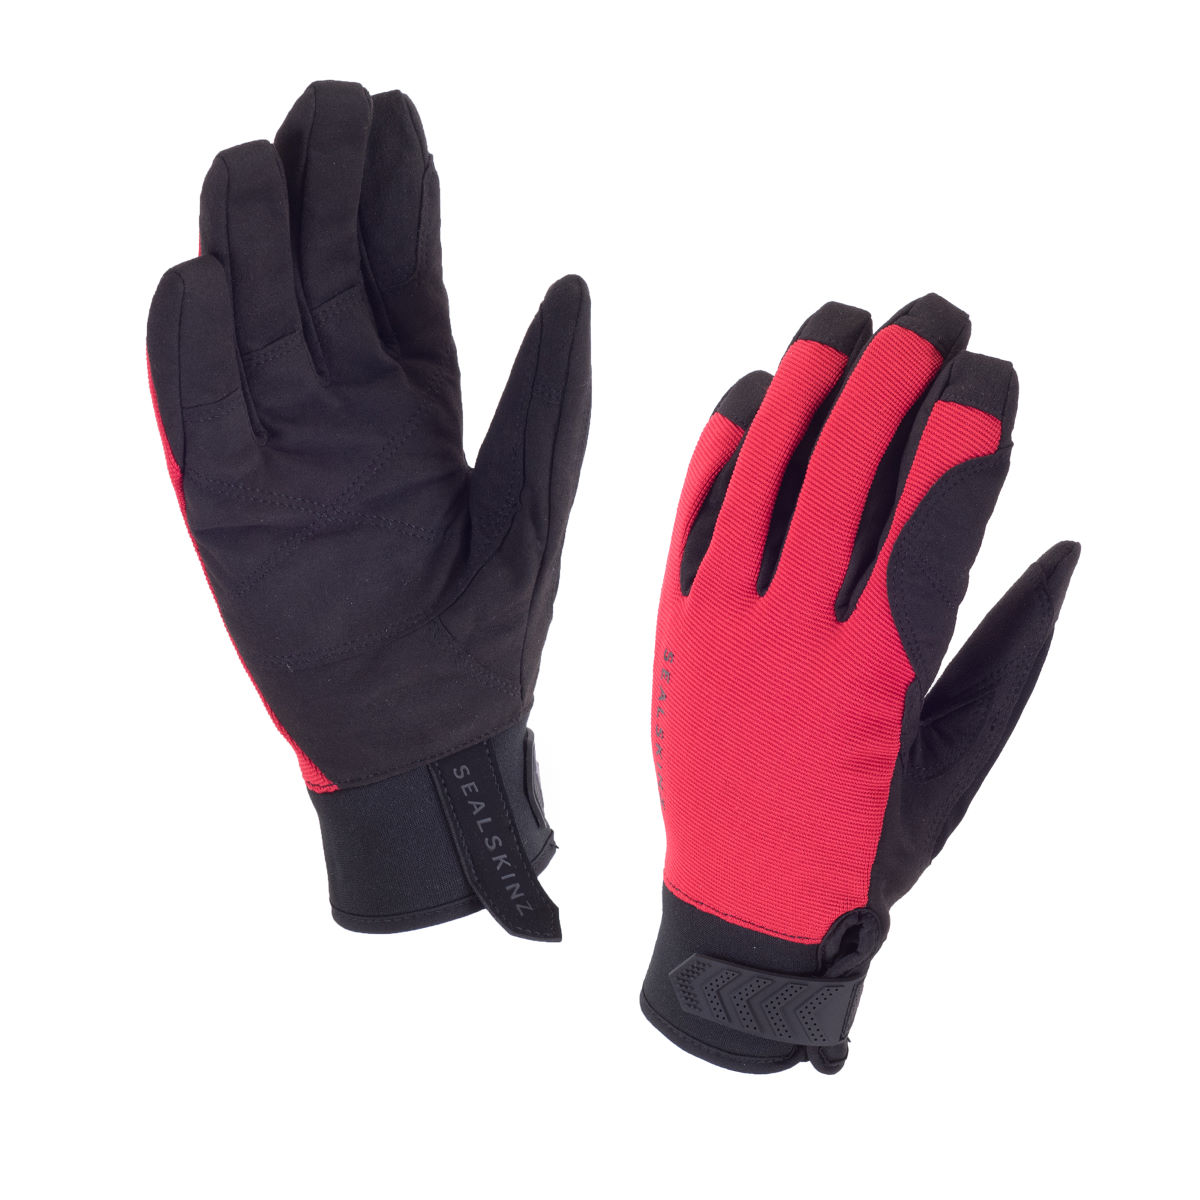 Gants SealSkinz Dragon Eye (route) - L Noir/Rouge Gants